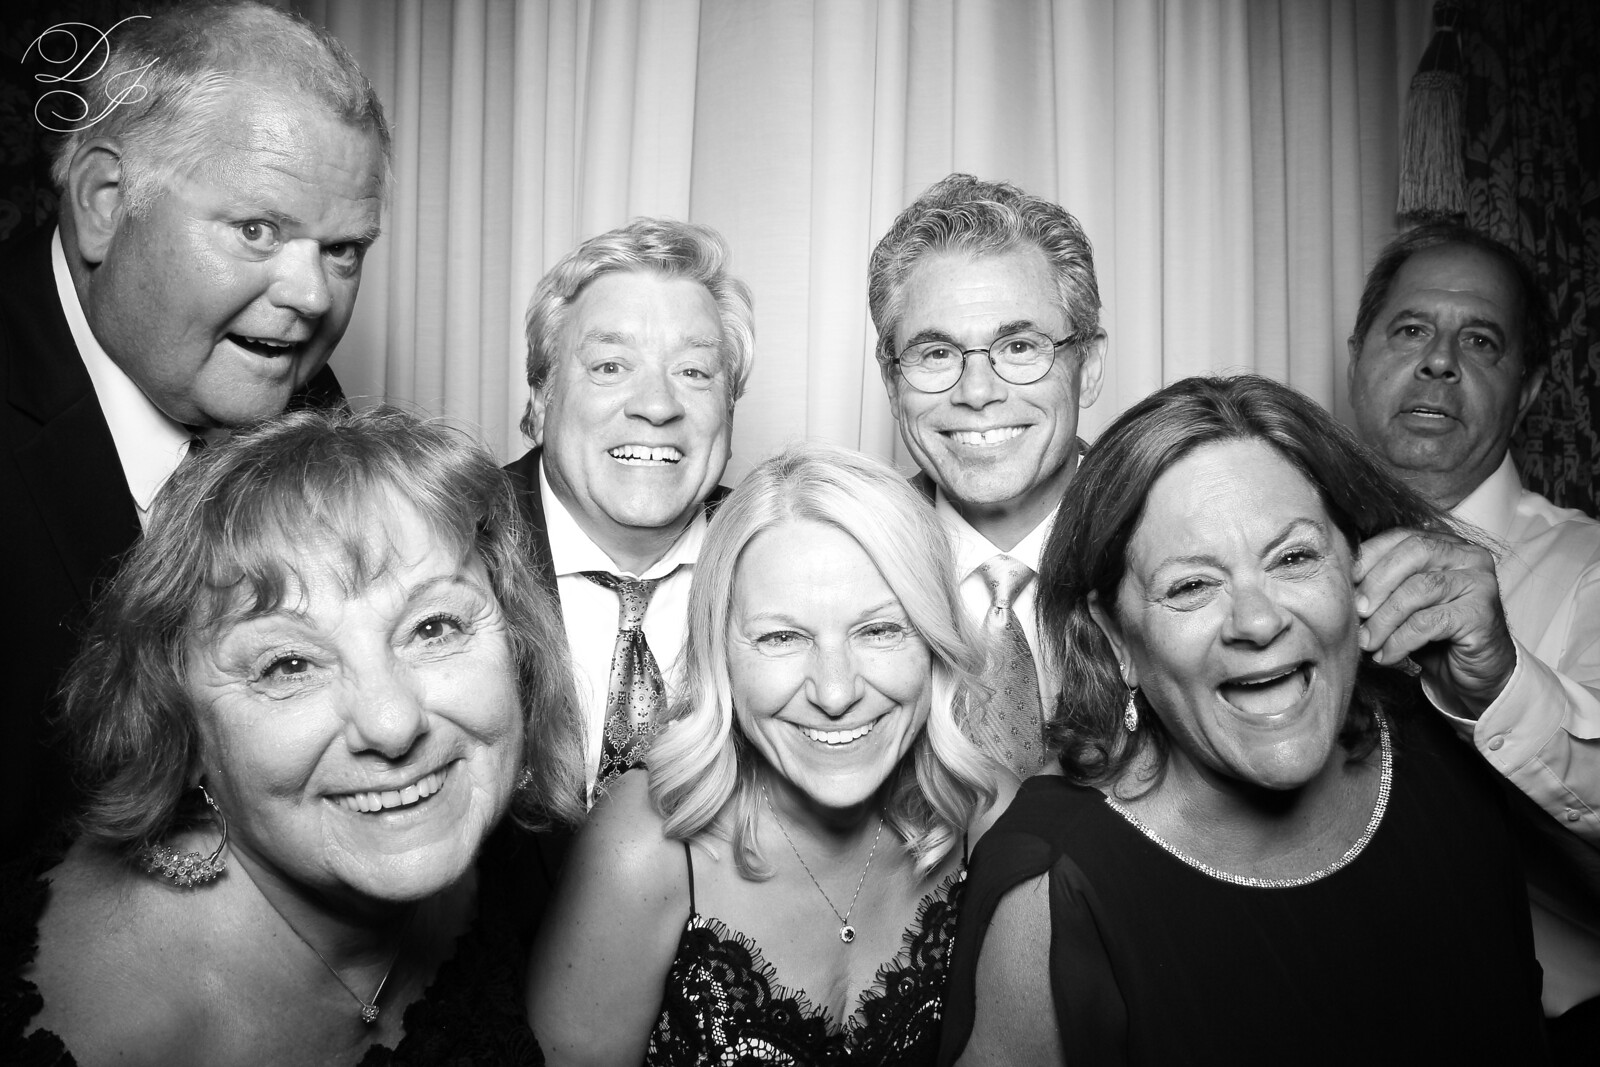 Chicago_Vintage_Wedding_Photobooth_Union_League_Club_30.jpg